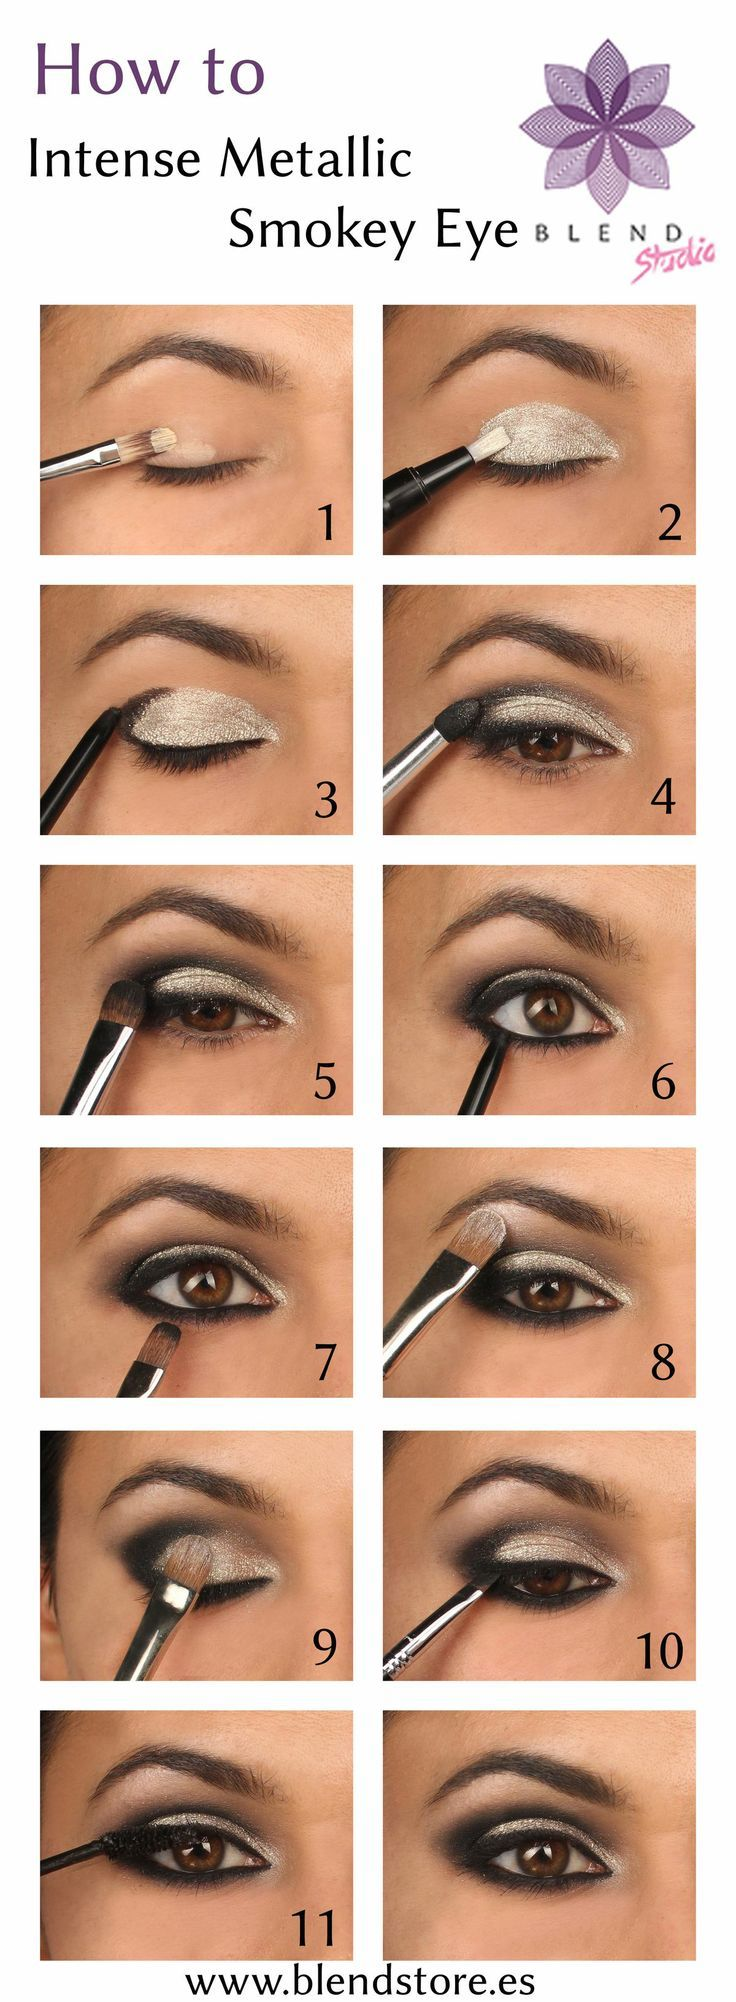 A few tips so you can get beautiful eyes like this